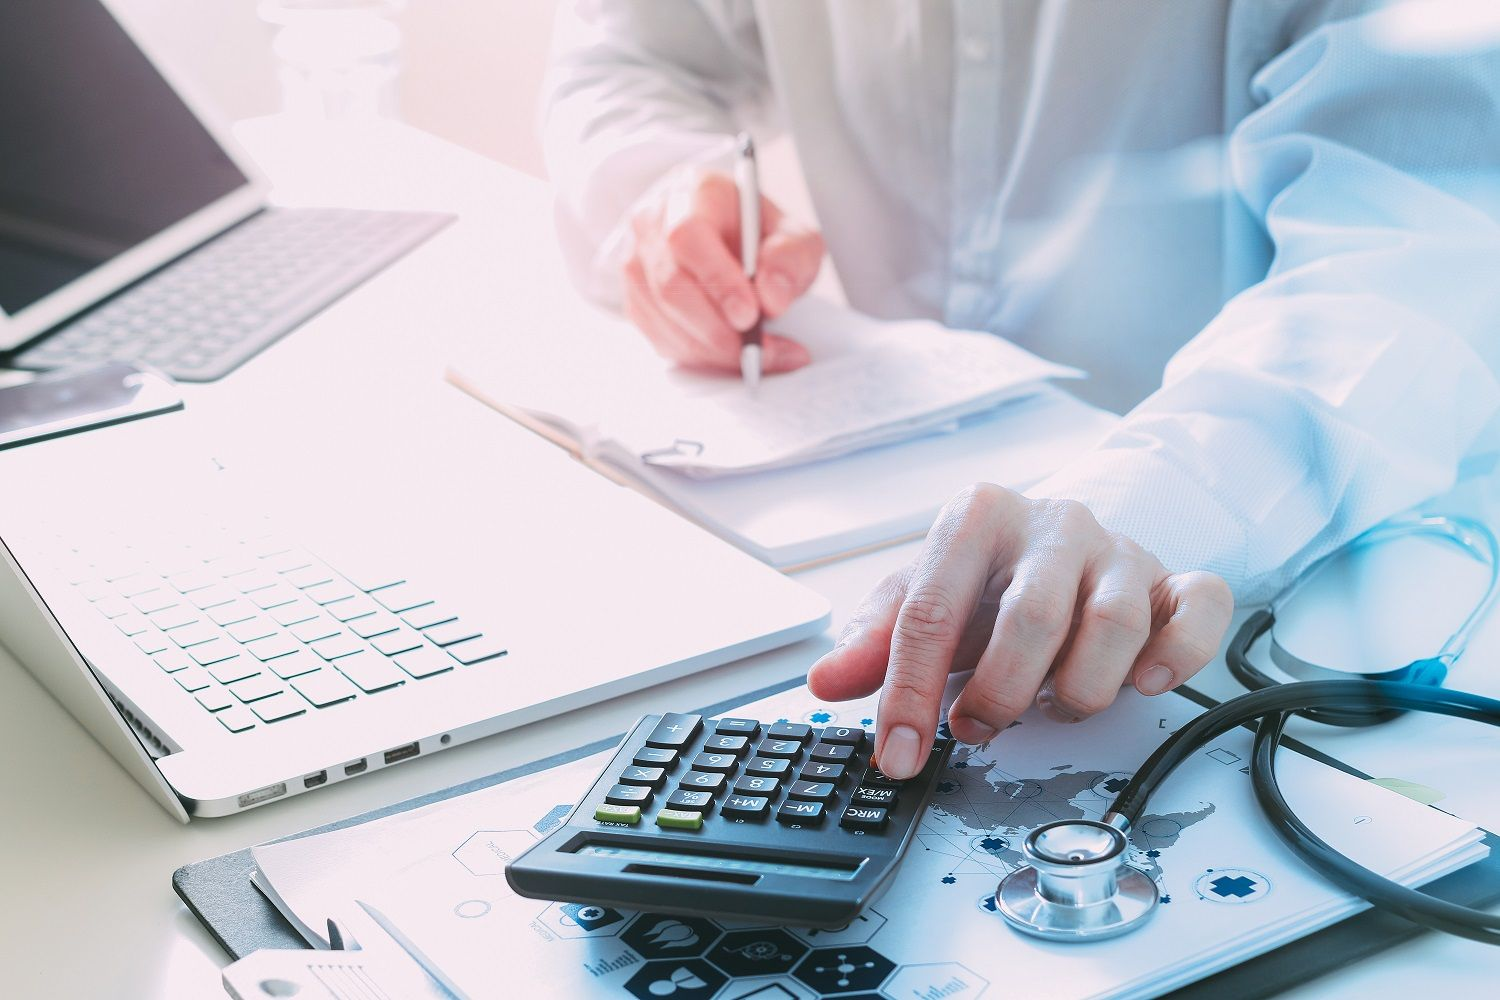 Revenue Cycle Management (RCM) software helps healthcare